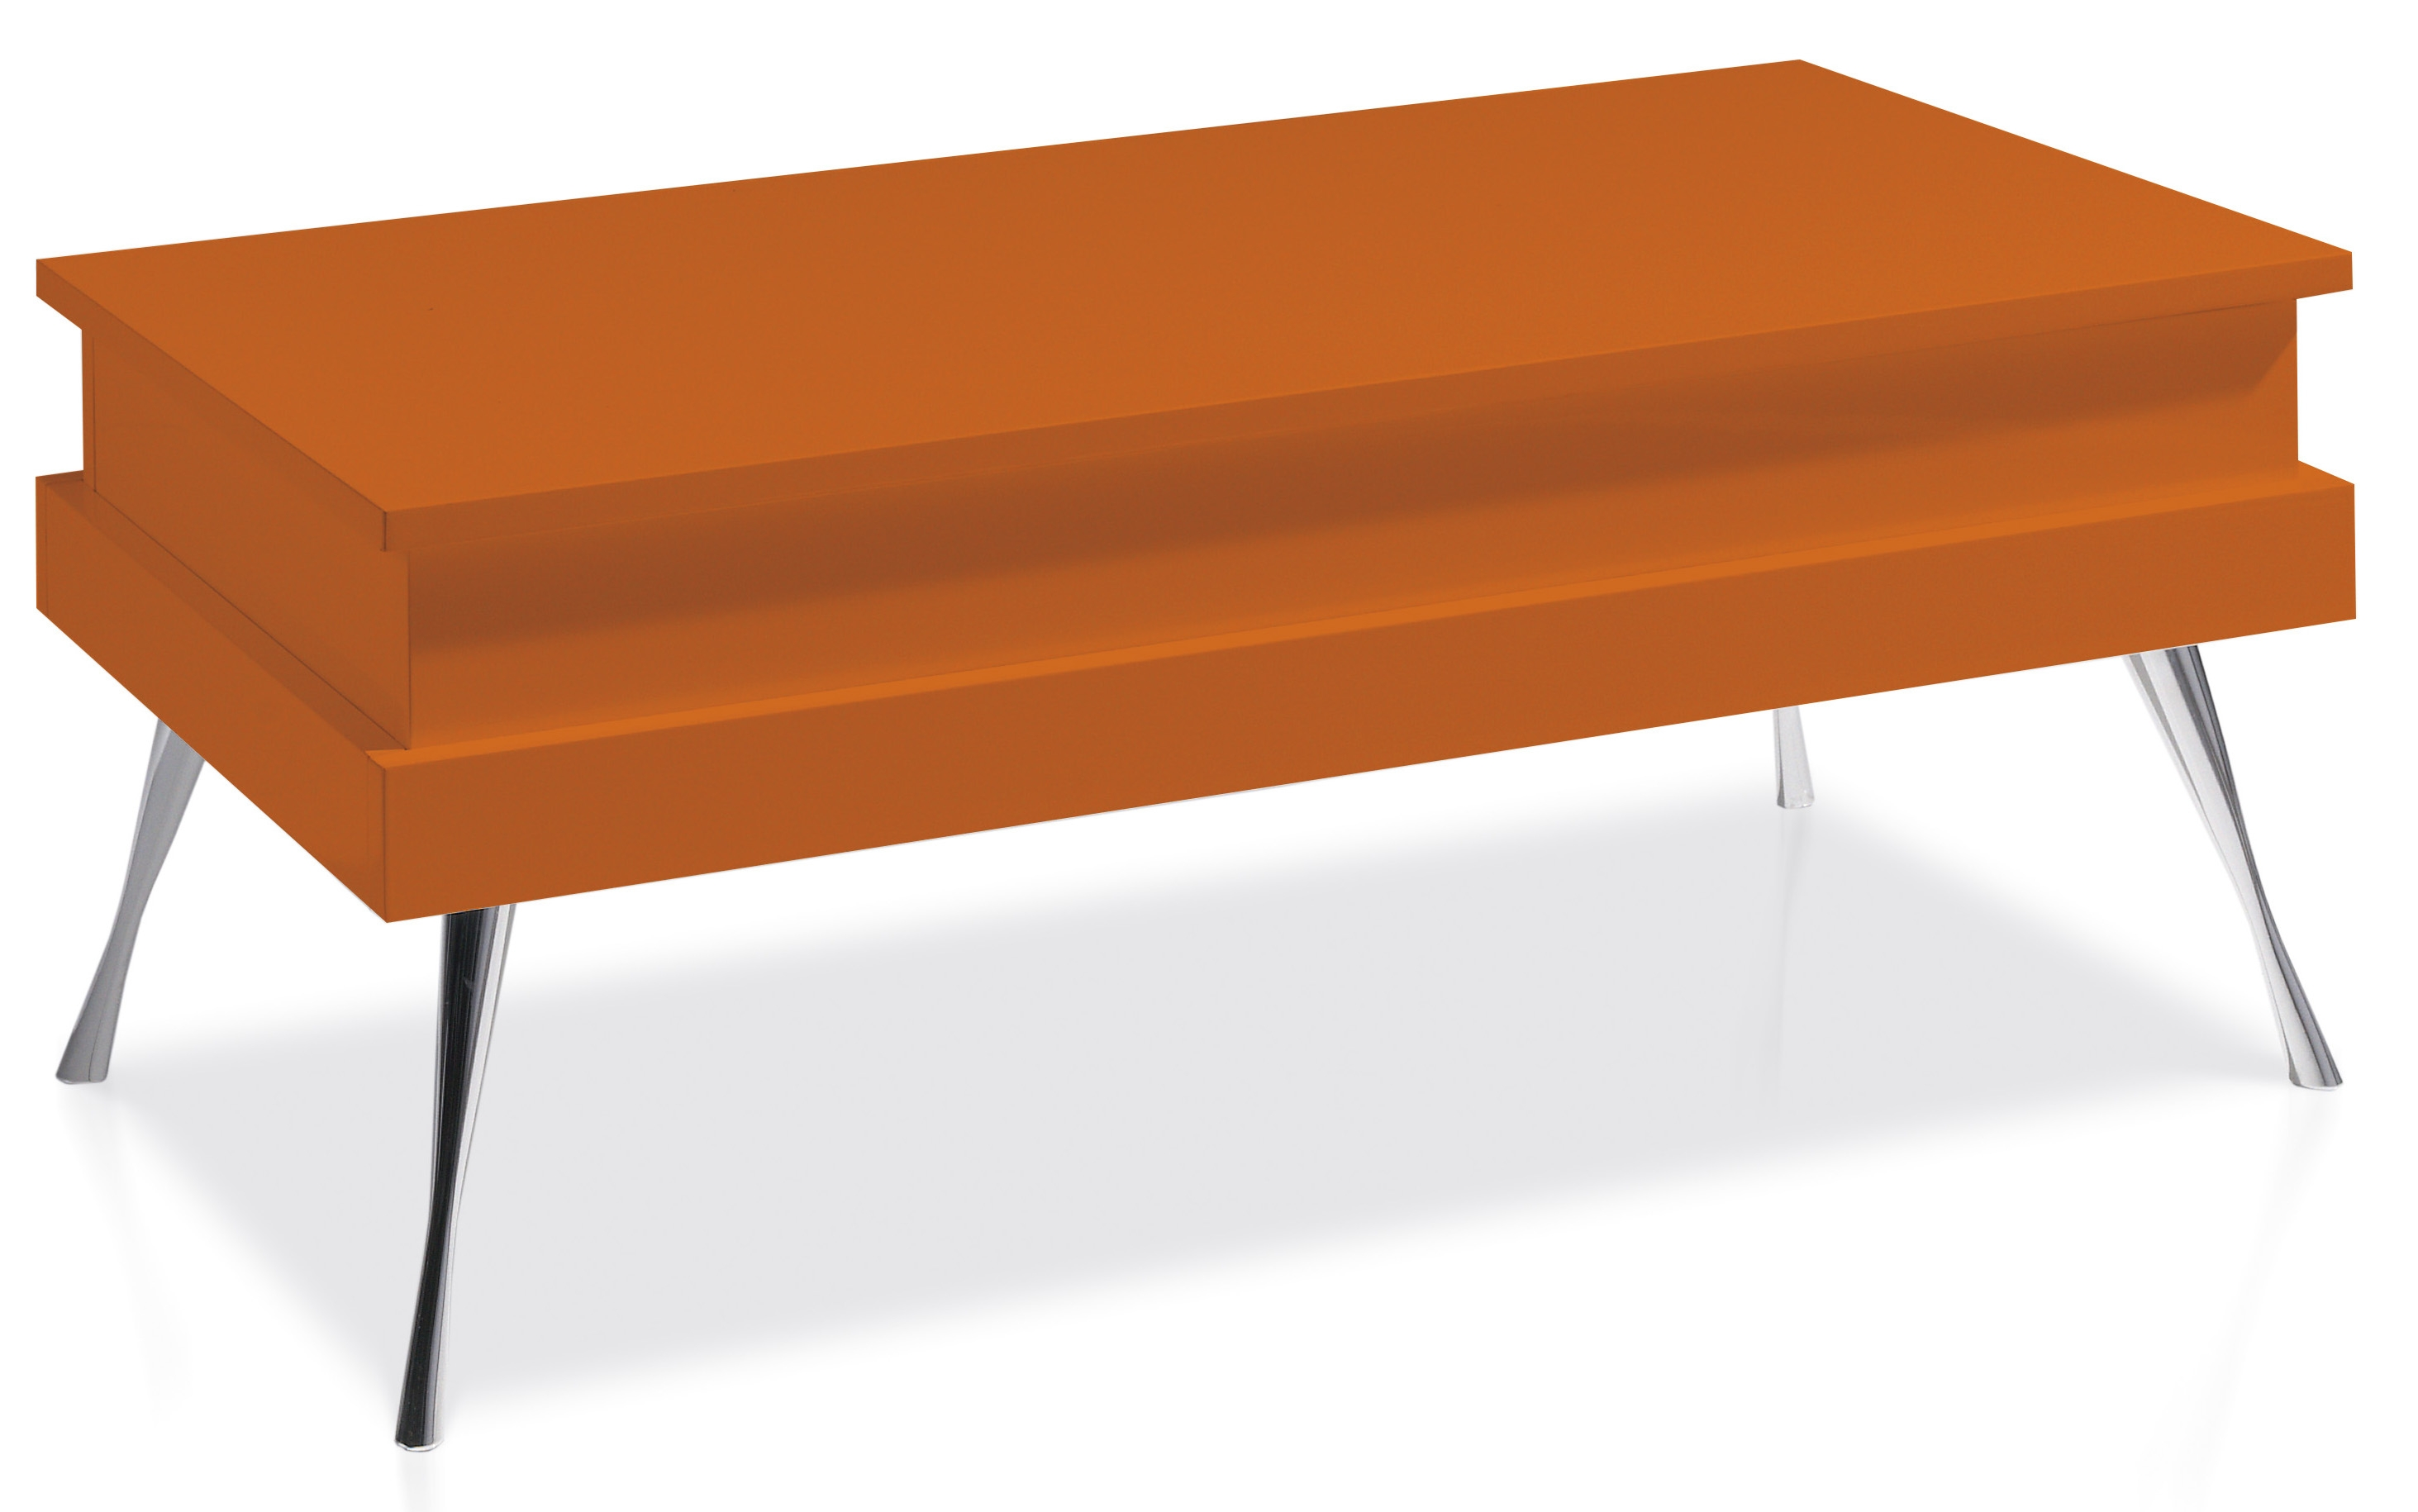 Table basse relevable laqu e orange pied acier chrom for Table basse orange